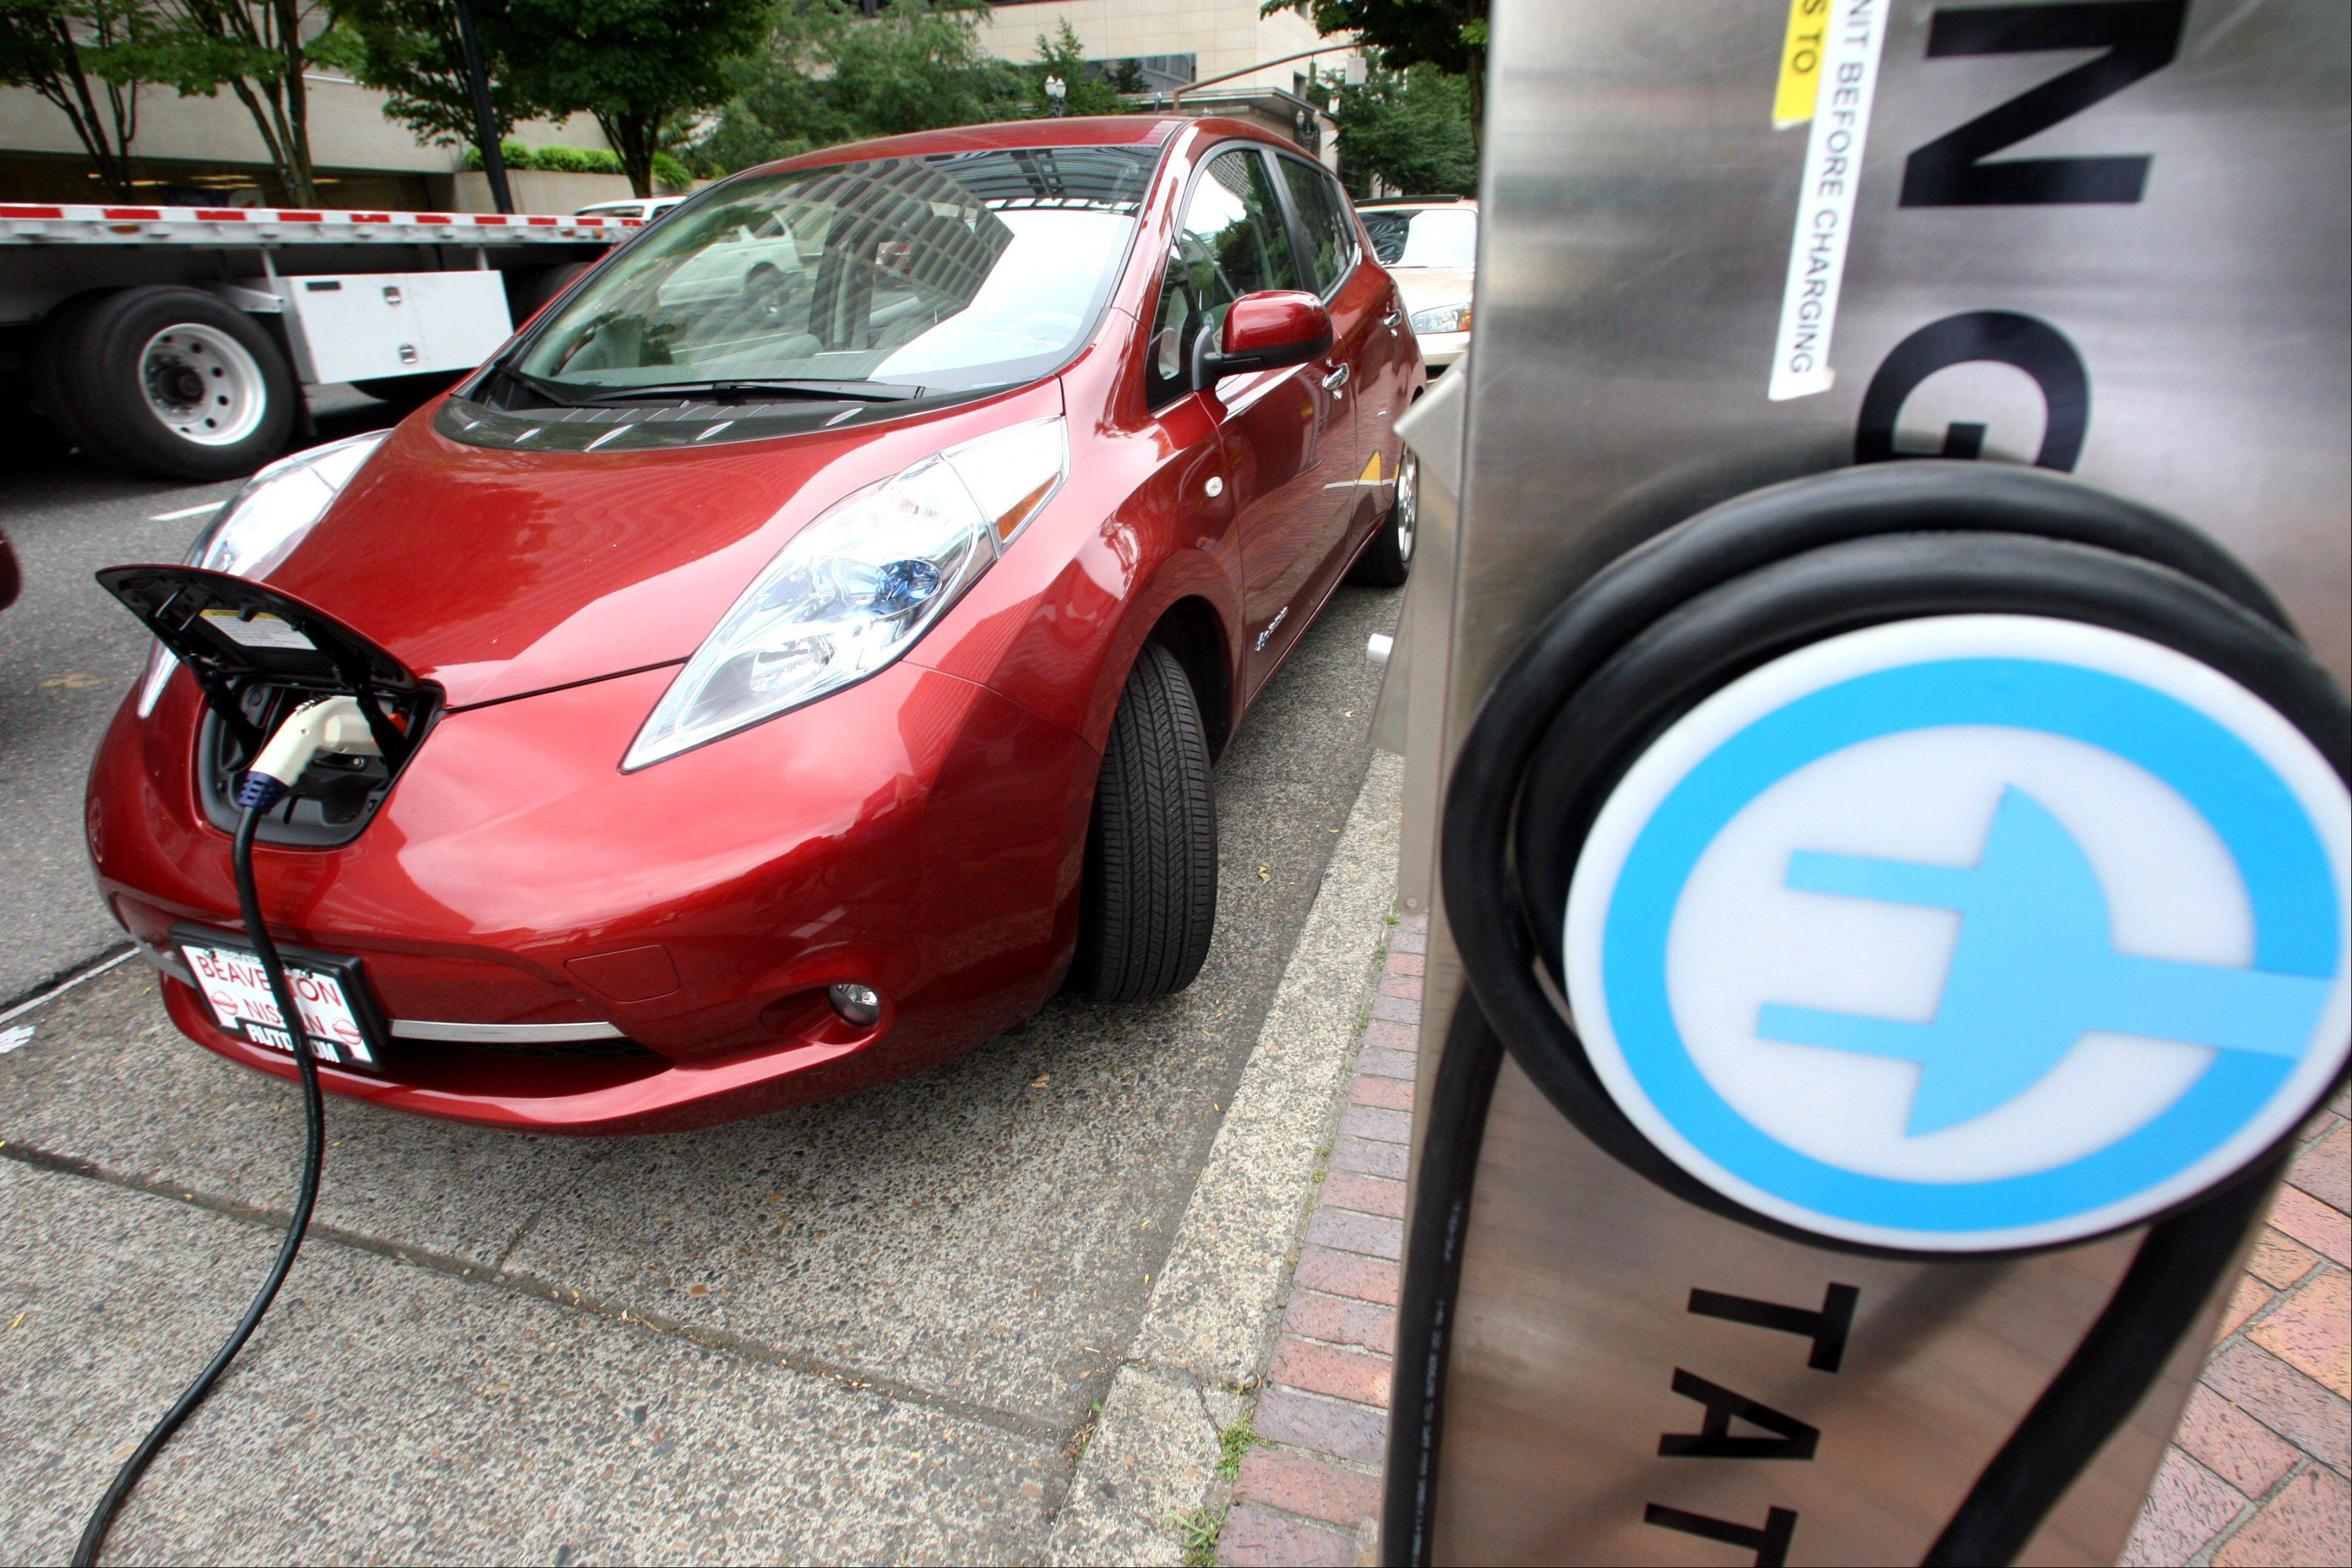 A Nissan Leaf charges at an electric vehicle charging station in Portland, Ore. The governors of eight states, including California and New York, pledged Thursday to get 3.3 million zero-emission vehicles on roadways by 2025 in an effort to curb greenhouse gas pollution.